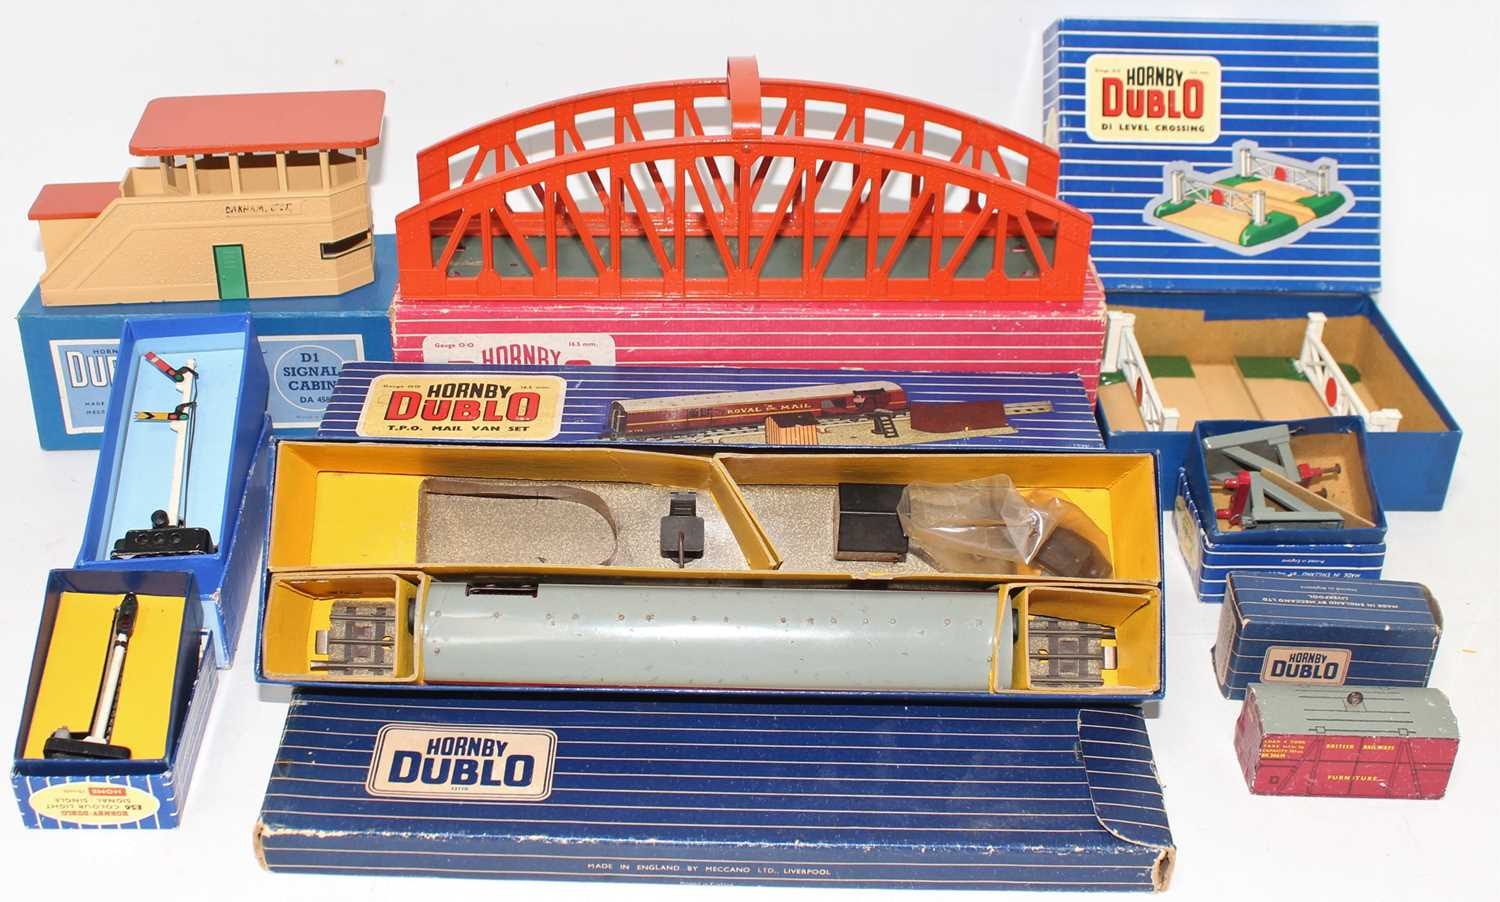 Tray containing Hornby-Dublo accessories: 5015 girder bridge (VG-BE); island platform extension (